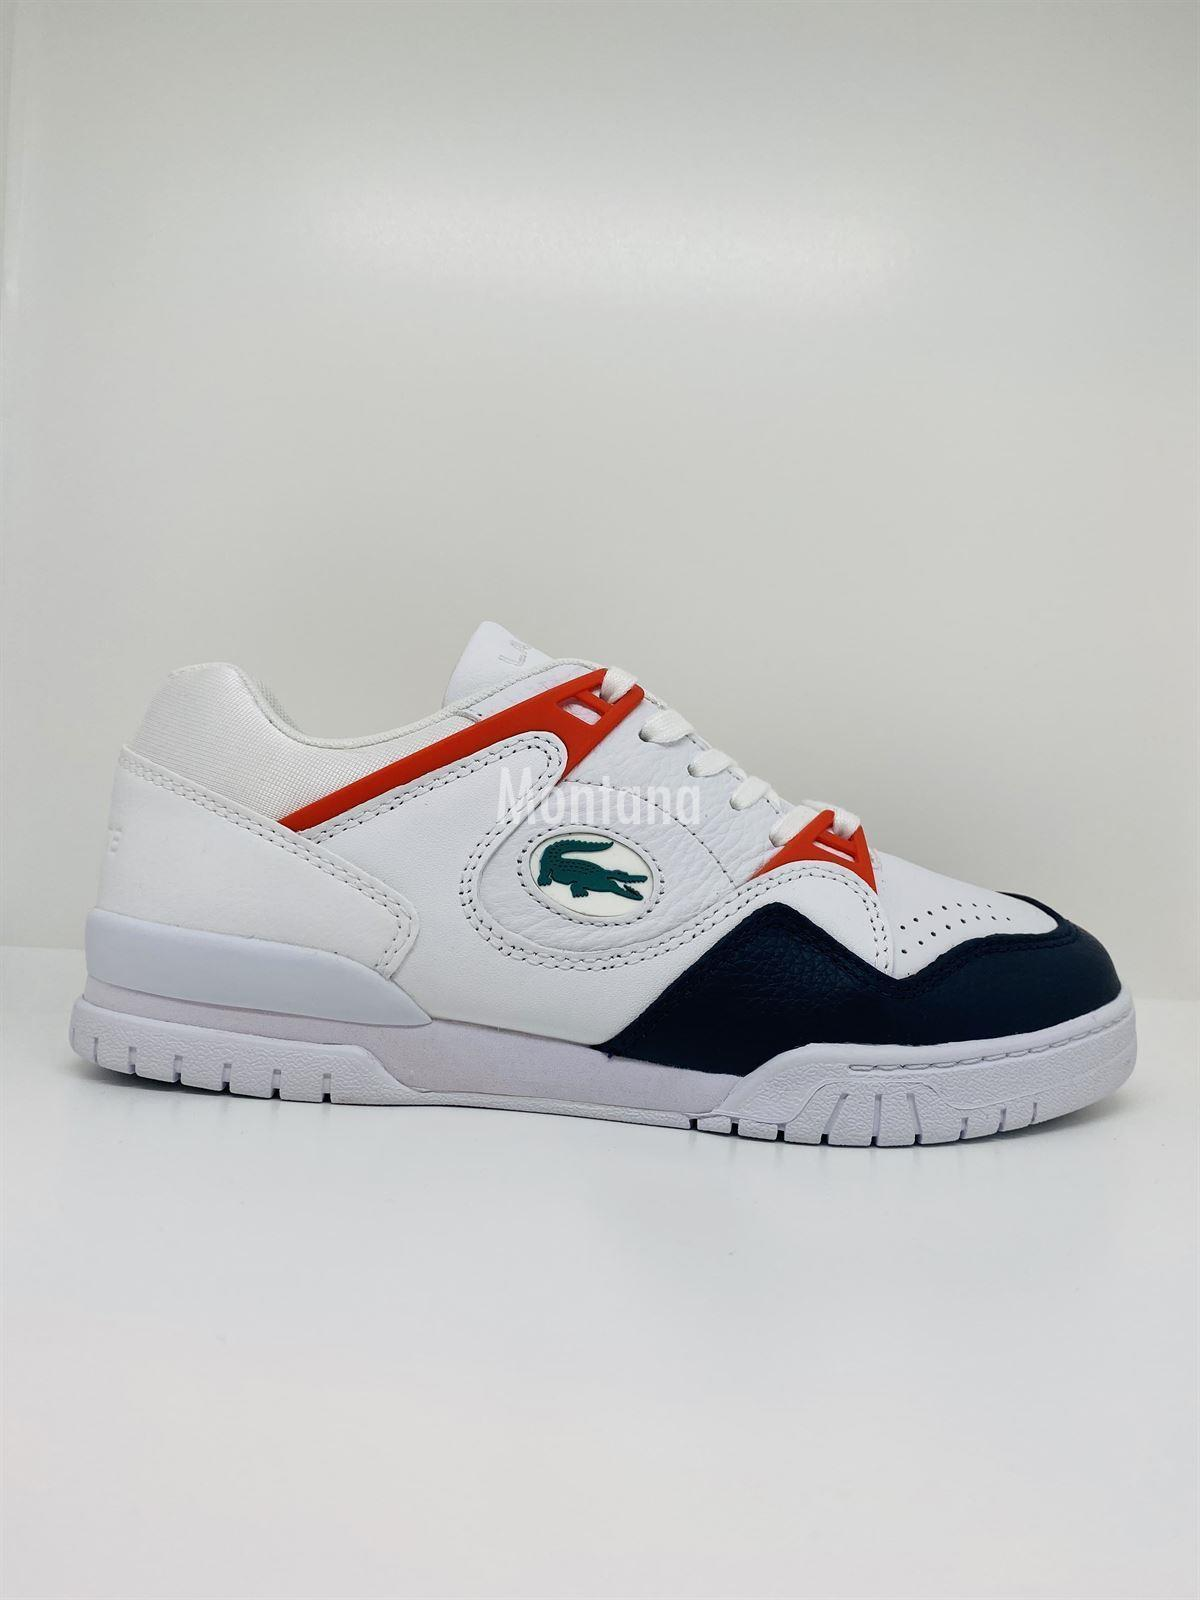 Zapatillas LACOSTE Courtpoint Leather 39SMA0004 White/Navy - Imagen 1